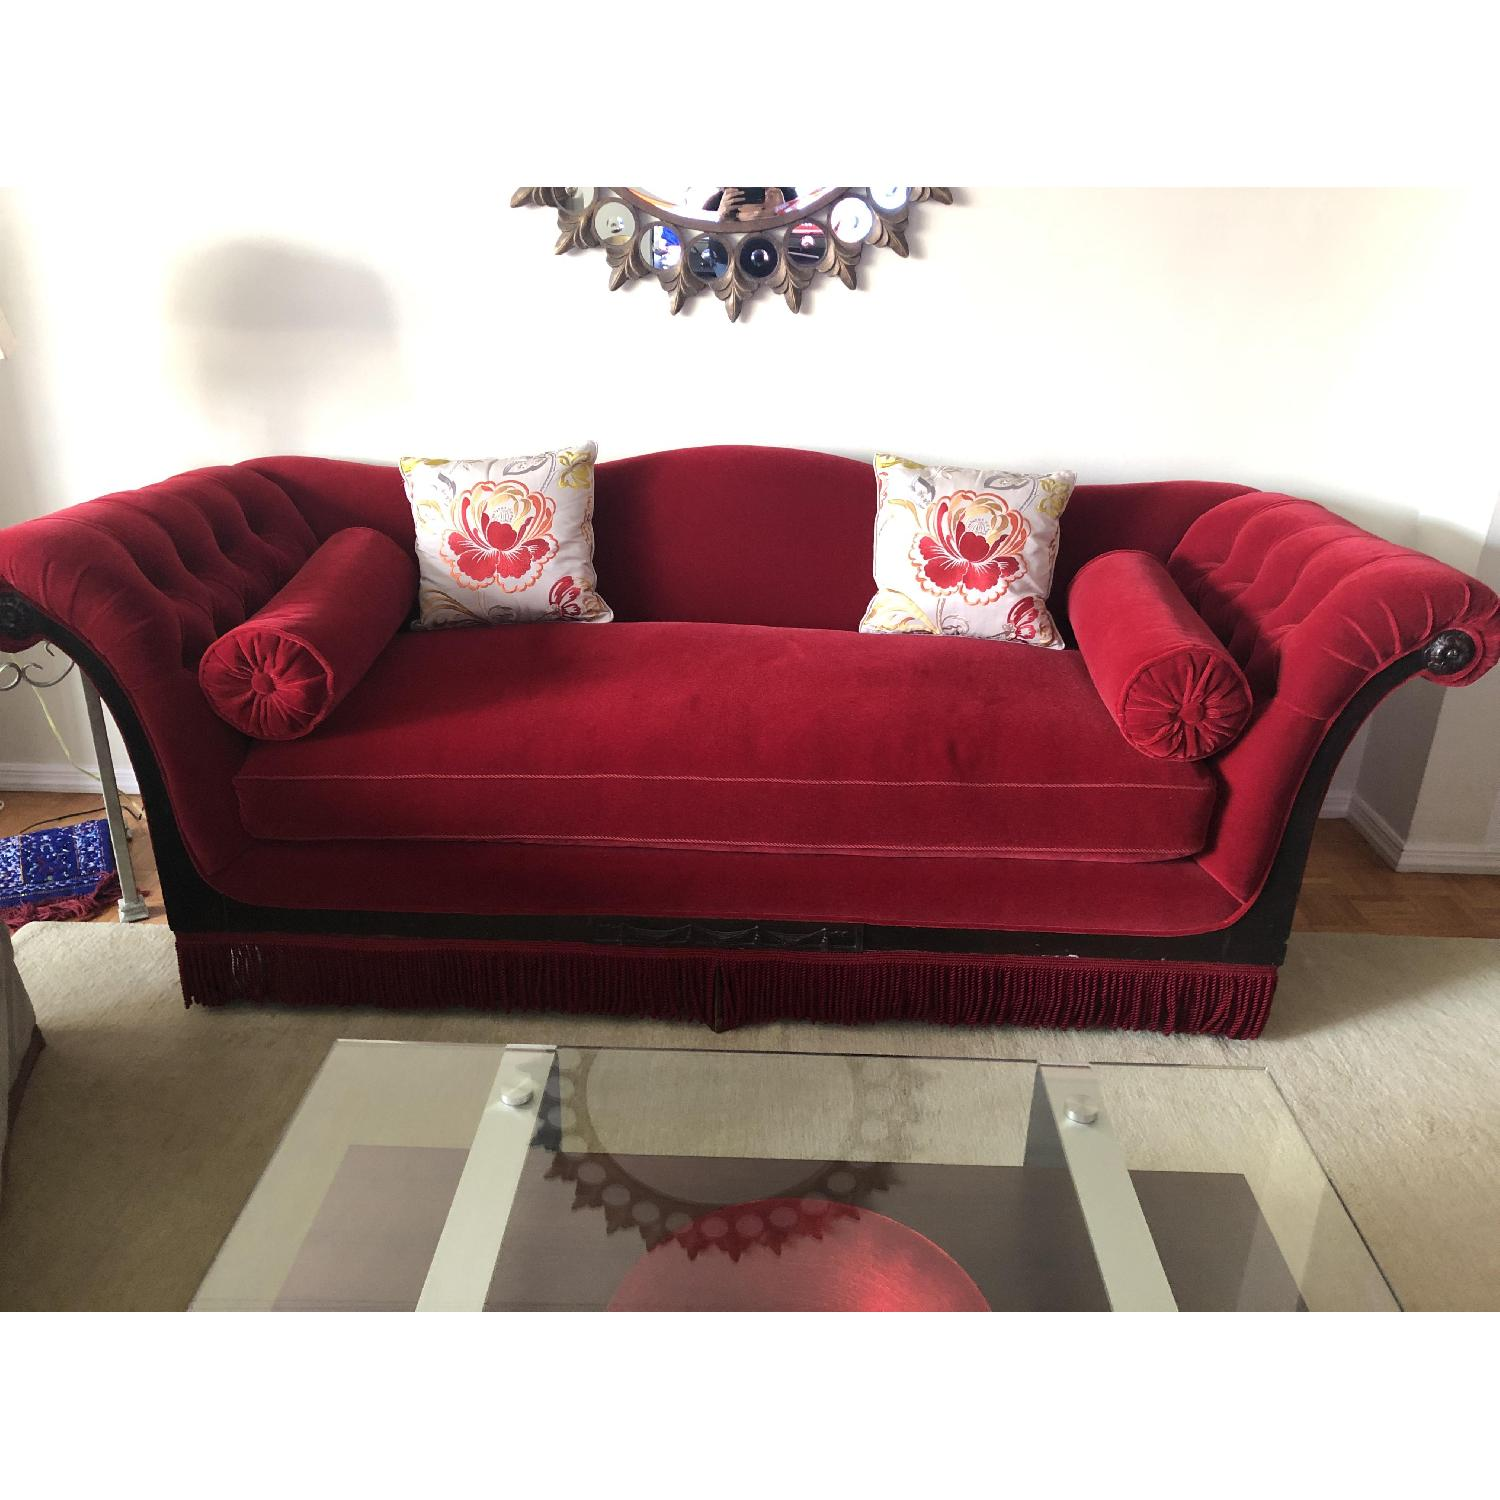 Vintage Cherry Red Mohair Sofa w/ Bolsters + Armchair - image-1